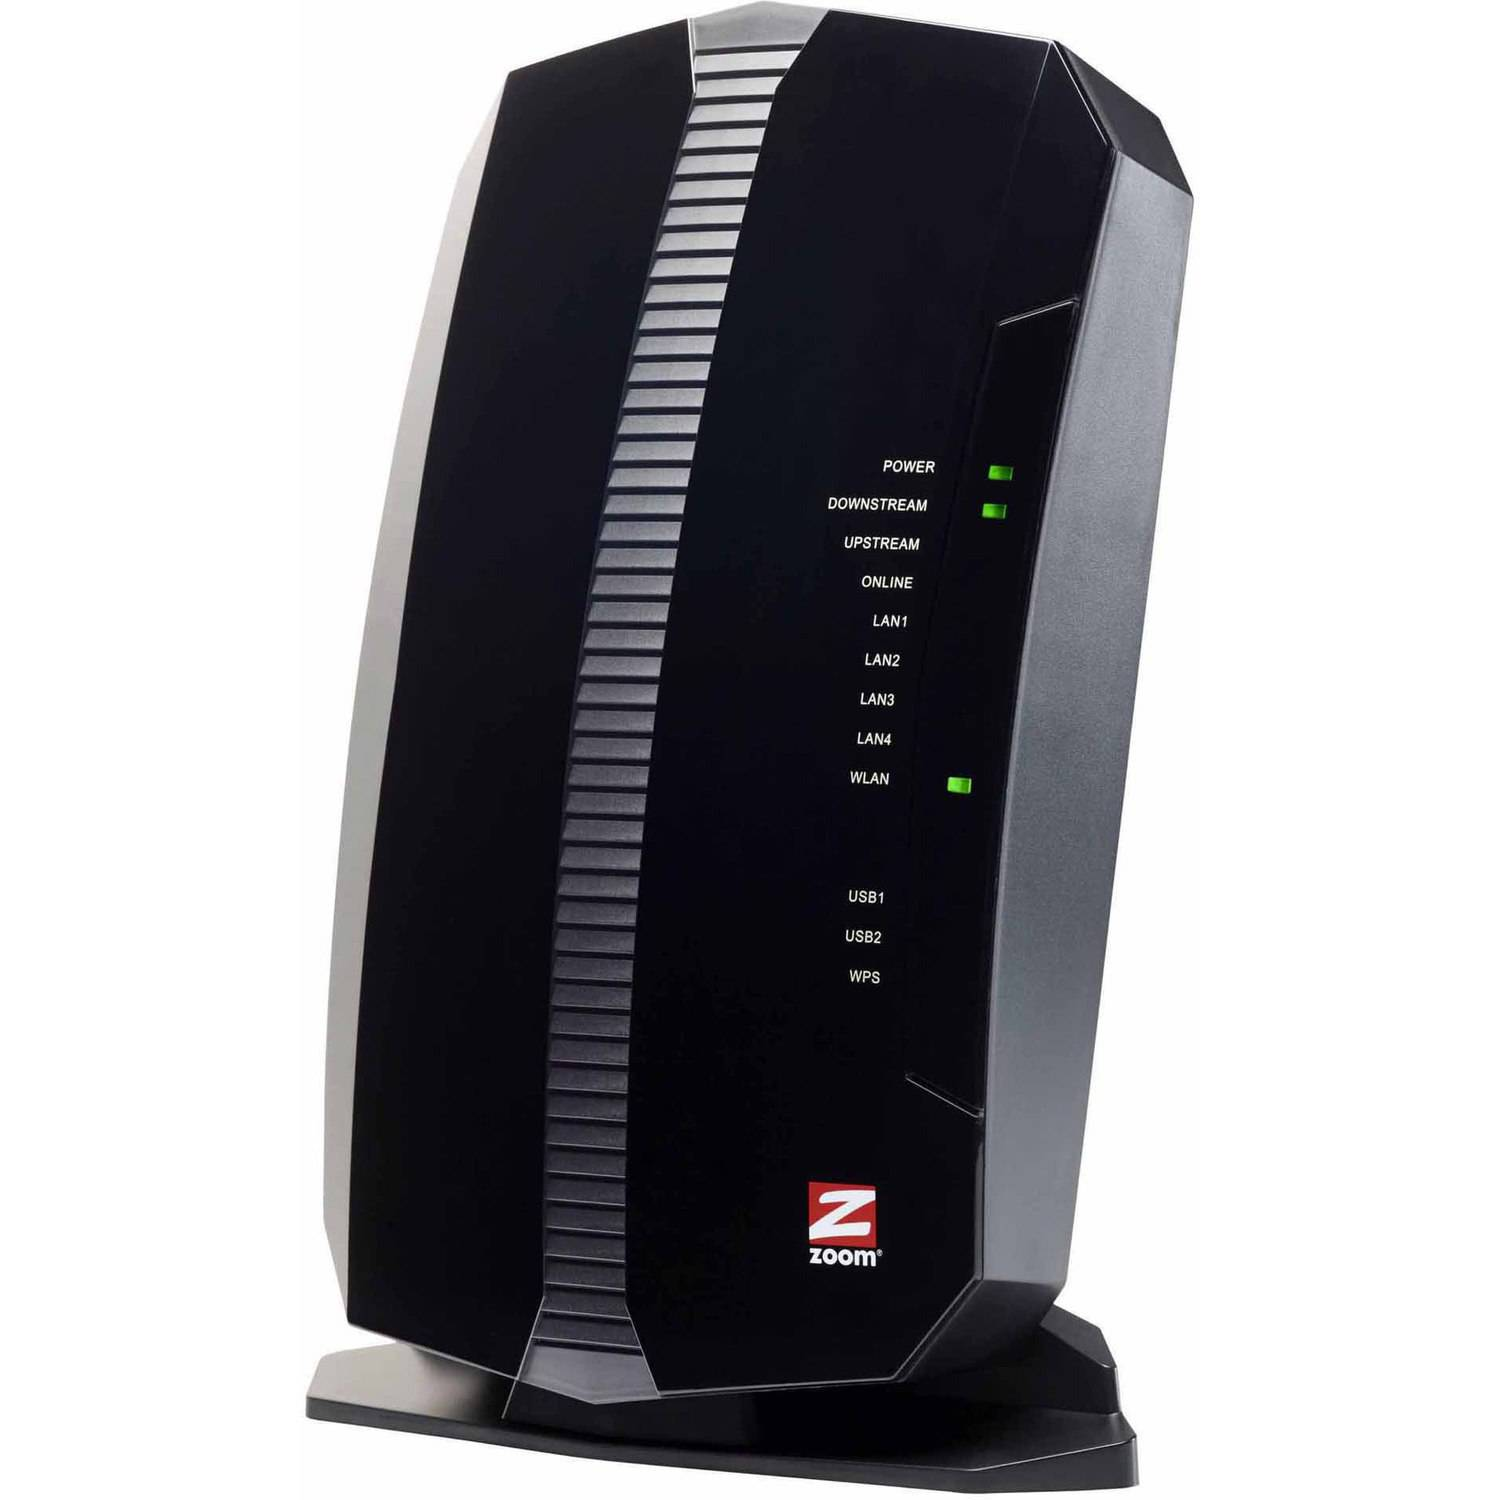 Zoom 5354 N300 Cable Modem Router with Wireless N and Gigabit Ethernet by Zoom